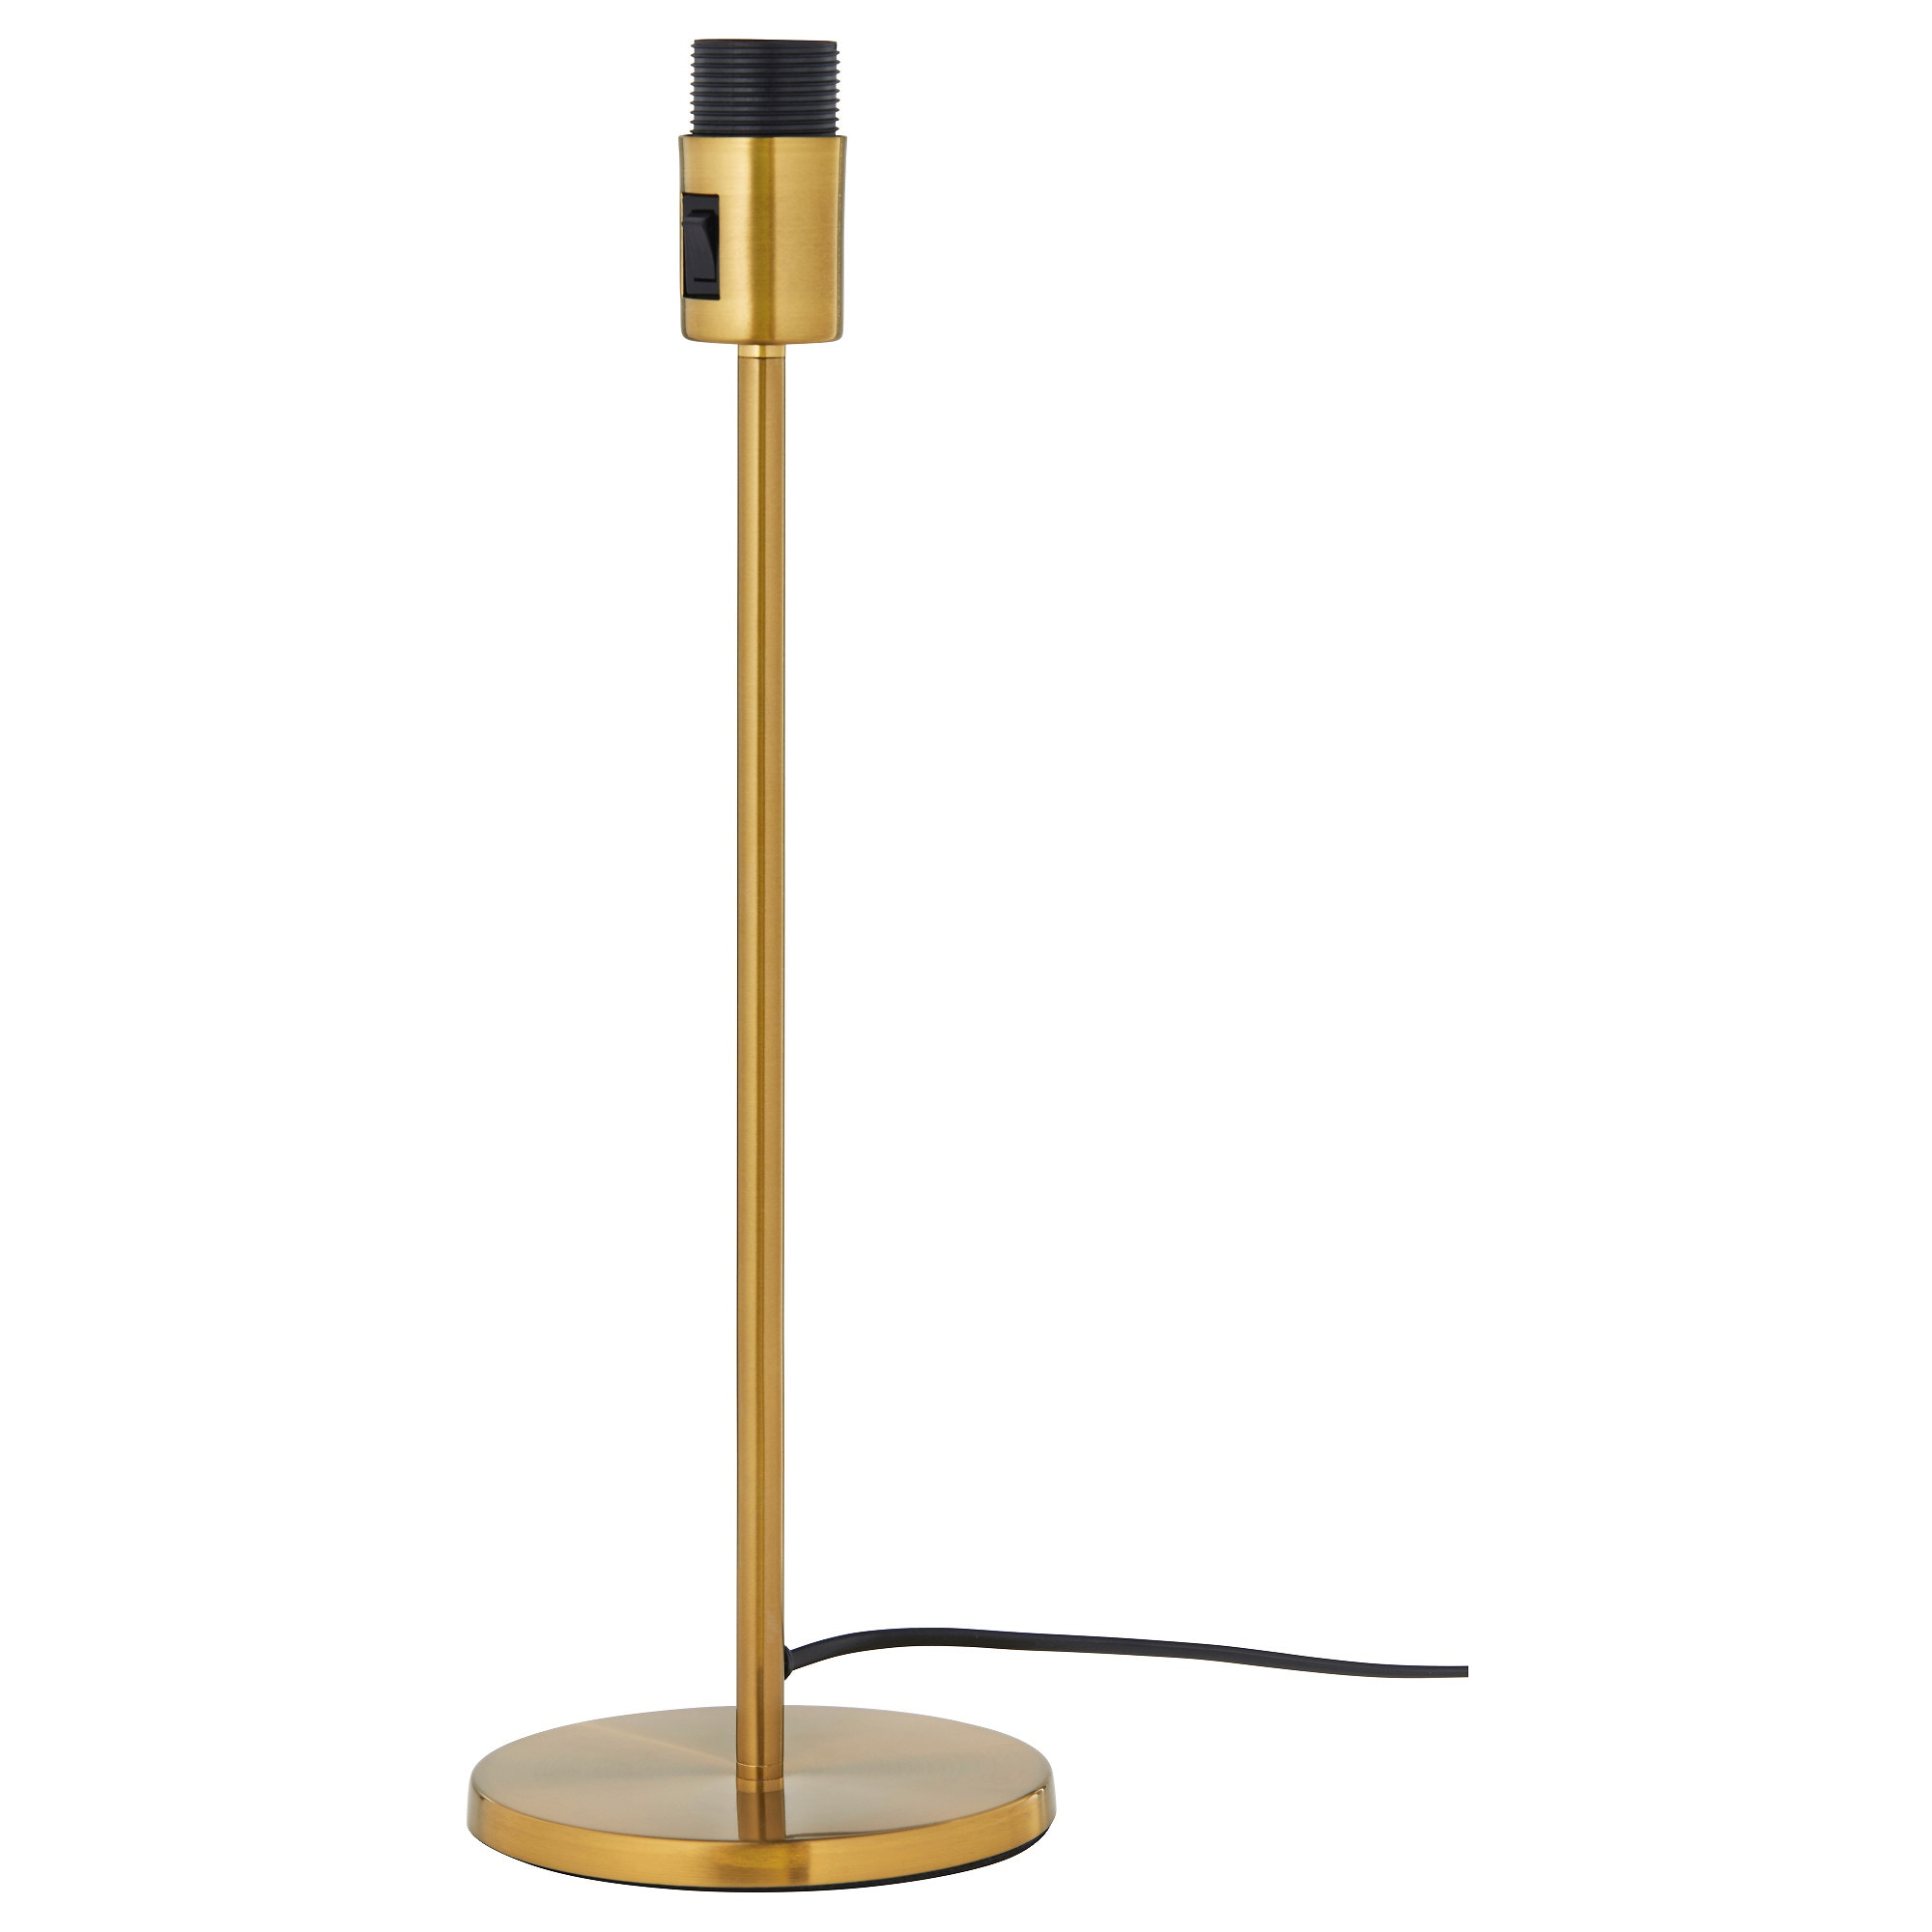 RODD table lamp base with LED bulb, brass color Height: 18